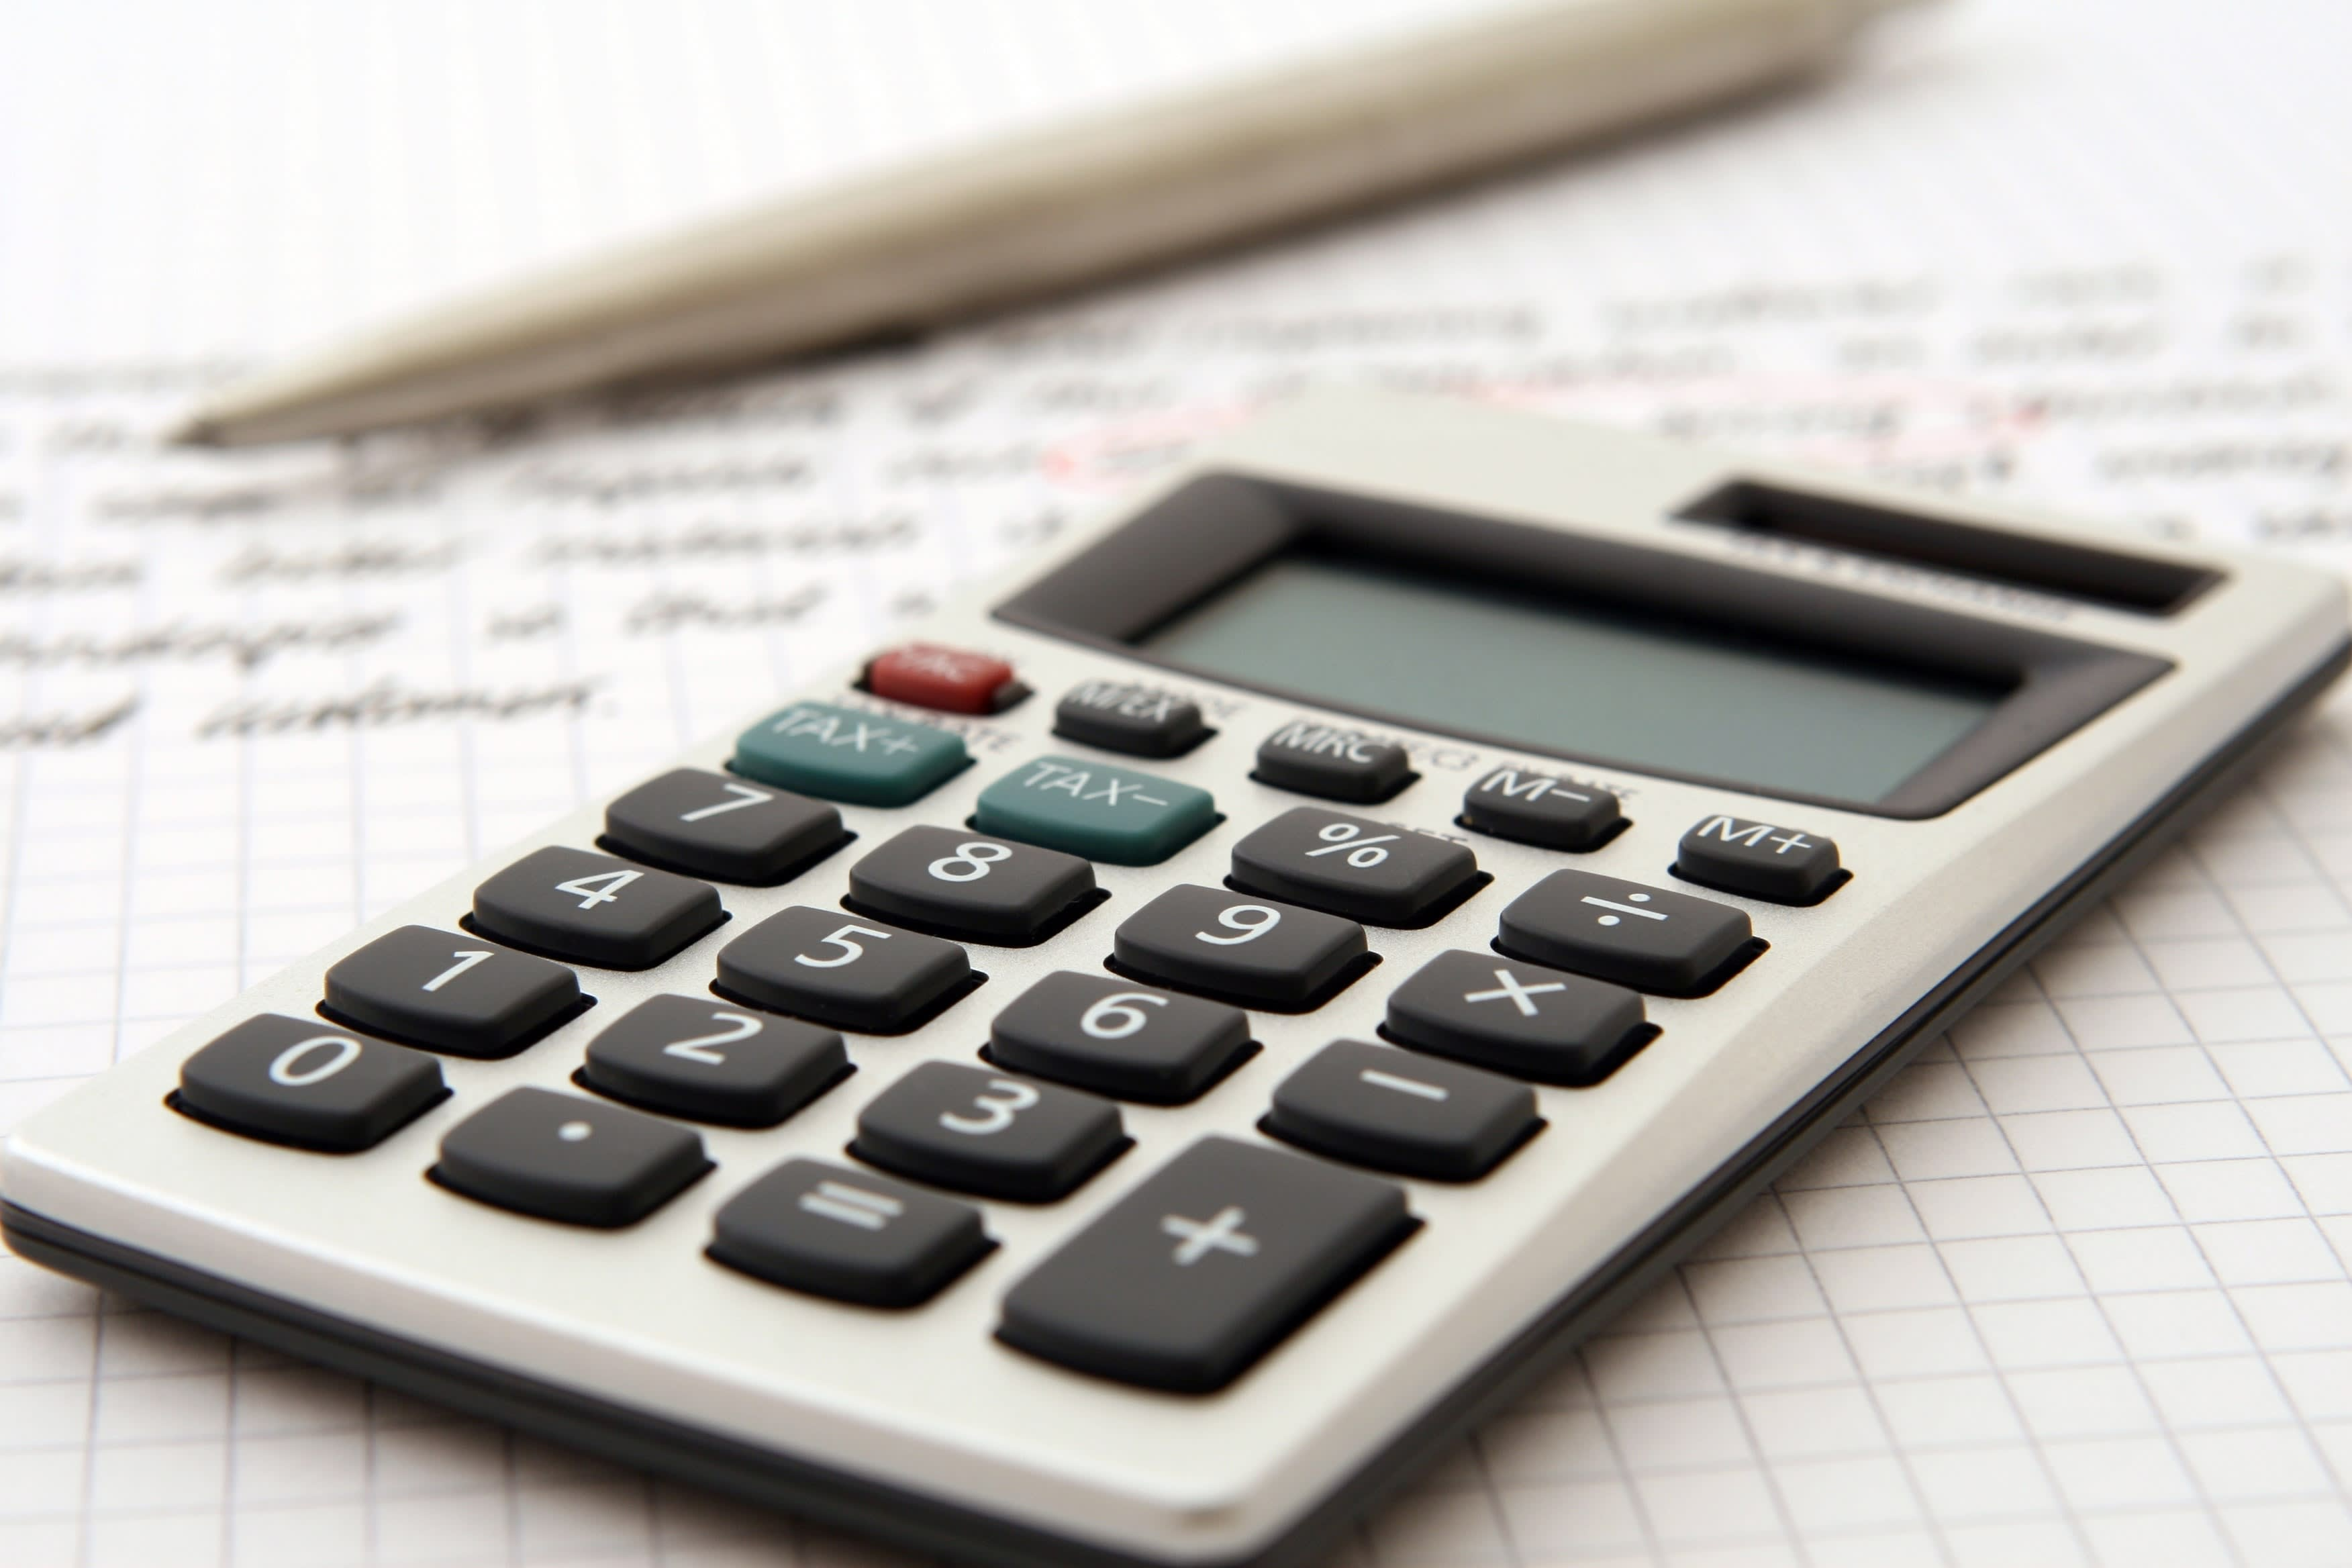 ABI soft launches income gap calculator